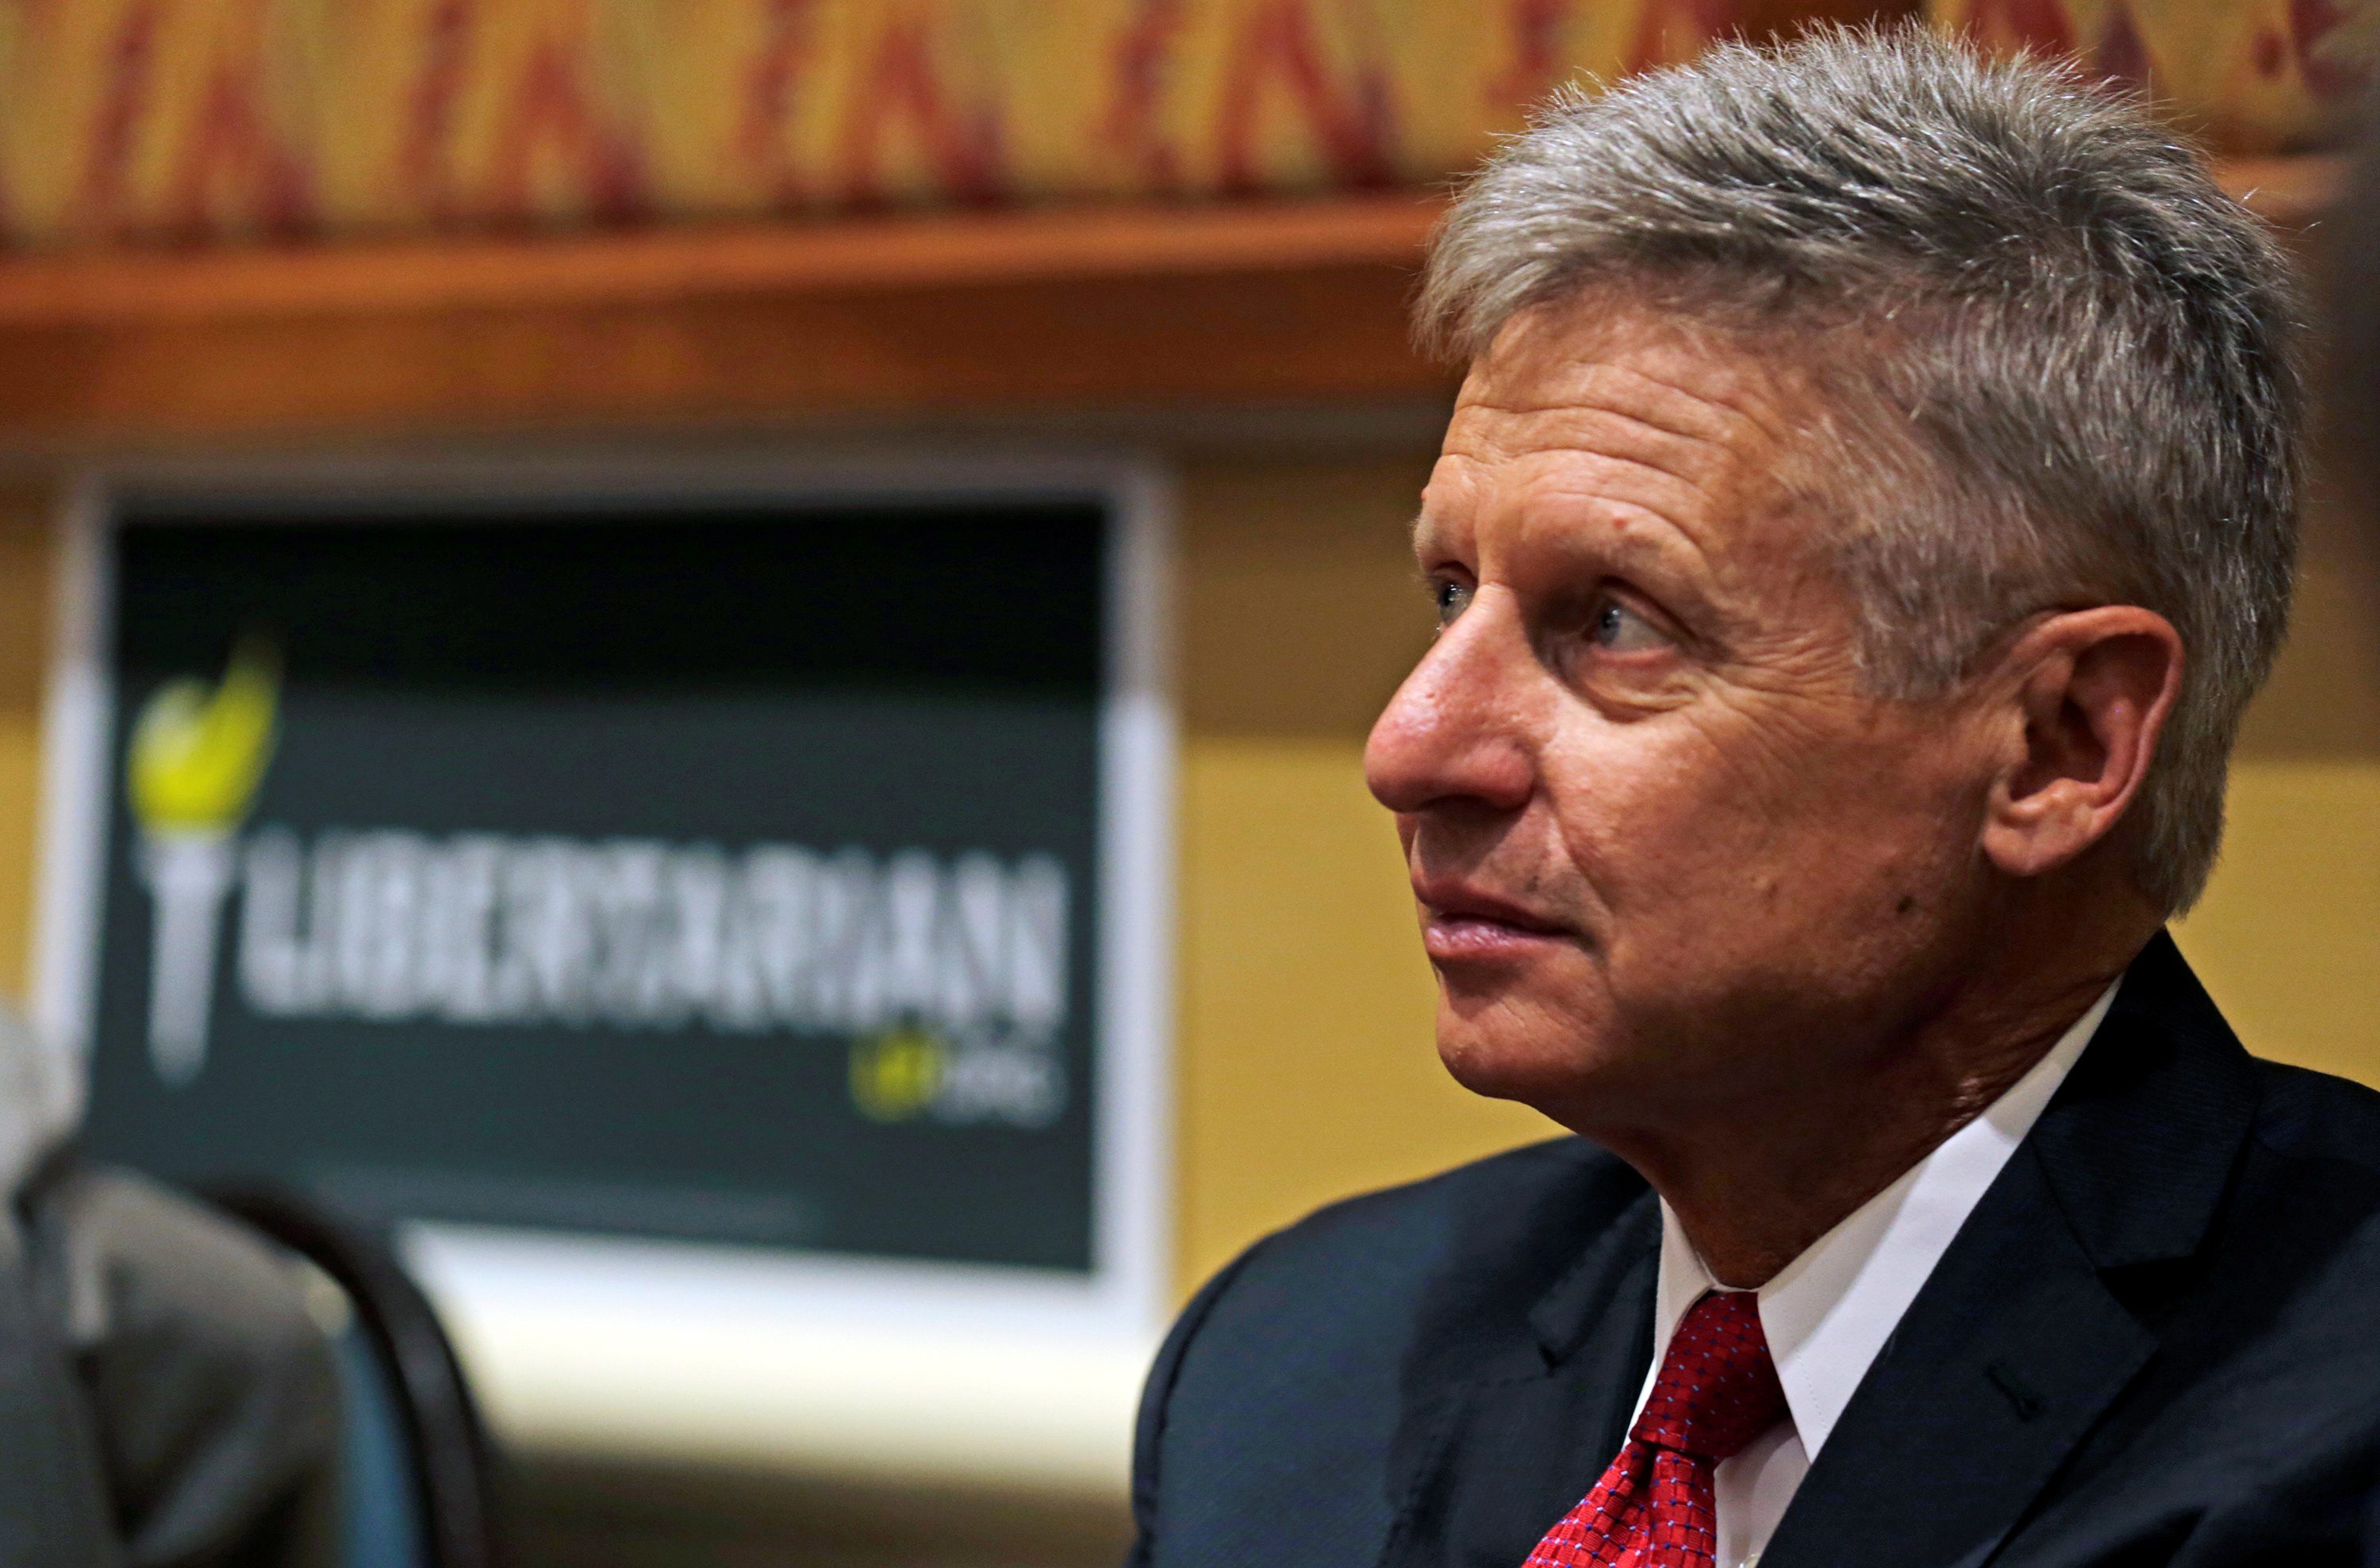 Libertarian Party presidential candidate Gary Johnson looks on during National Convention held at the Rosen Center in Orlando, Florida, May 29, 2016. REUTERS/Kevin Kolczynski - RTX2EQ7N